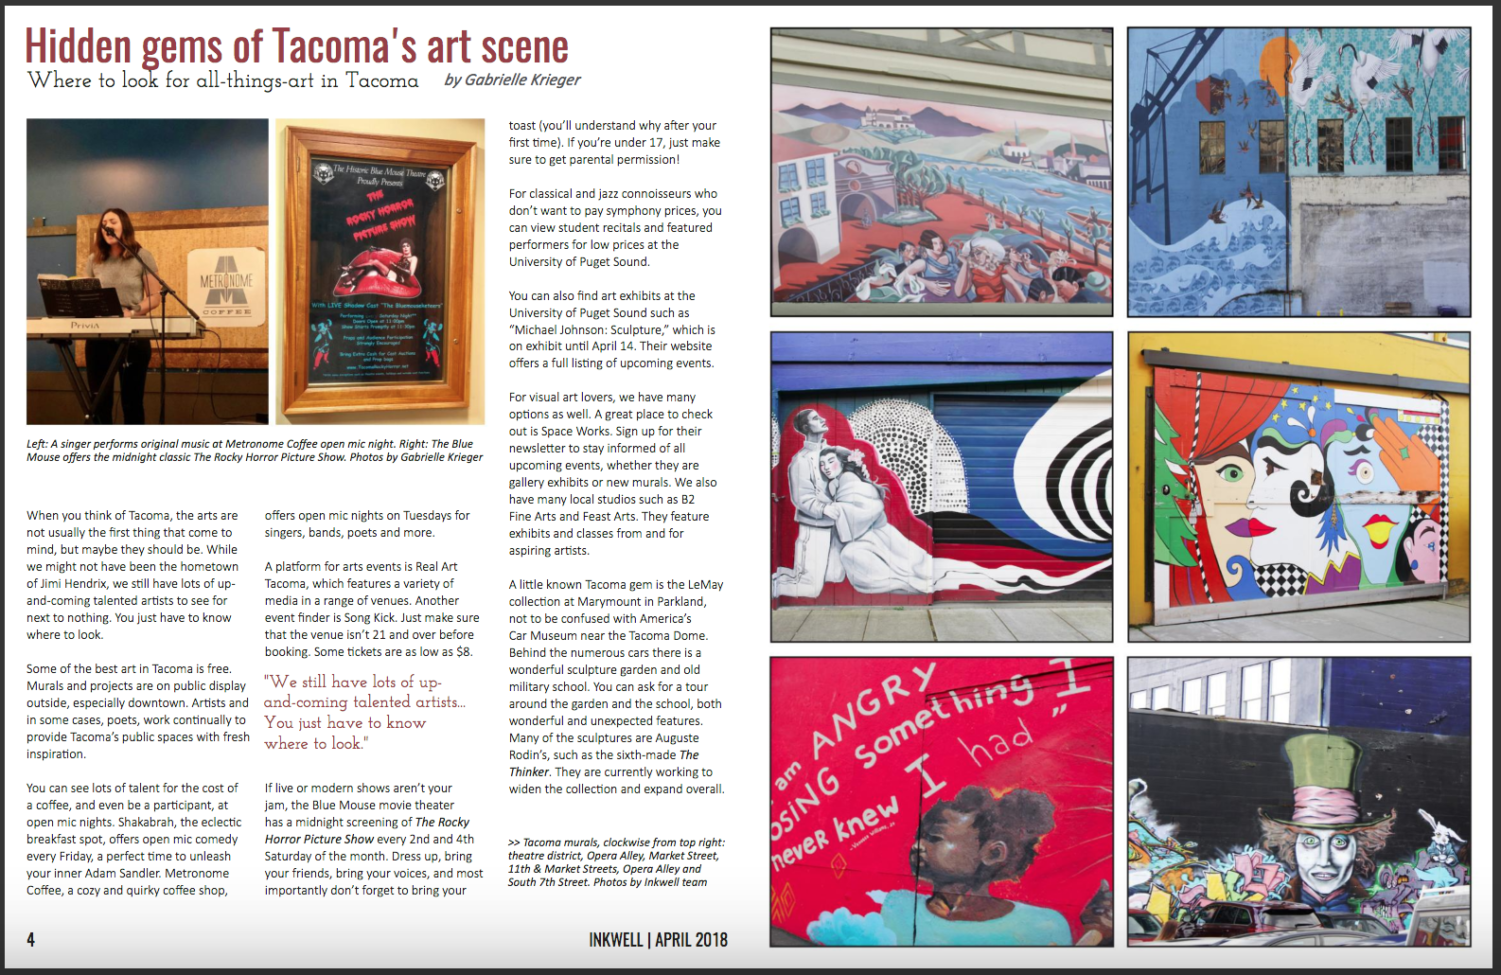 a spread from Inkwell's April Arts Issue